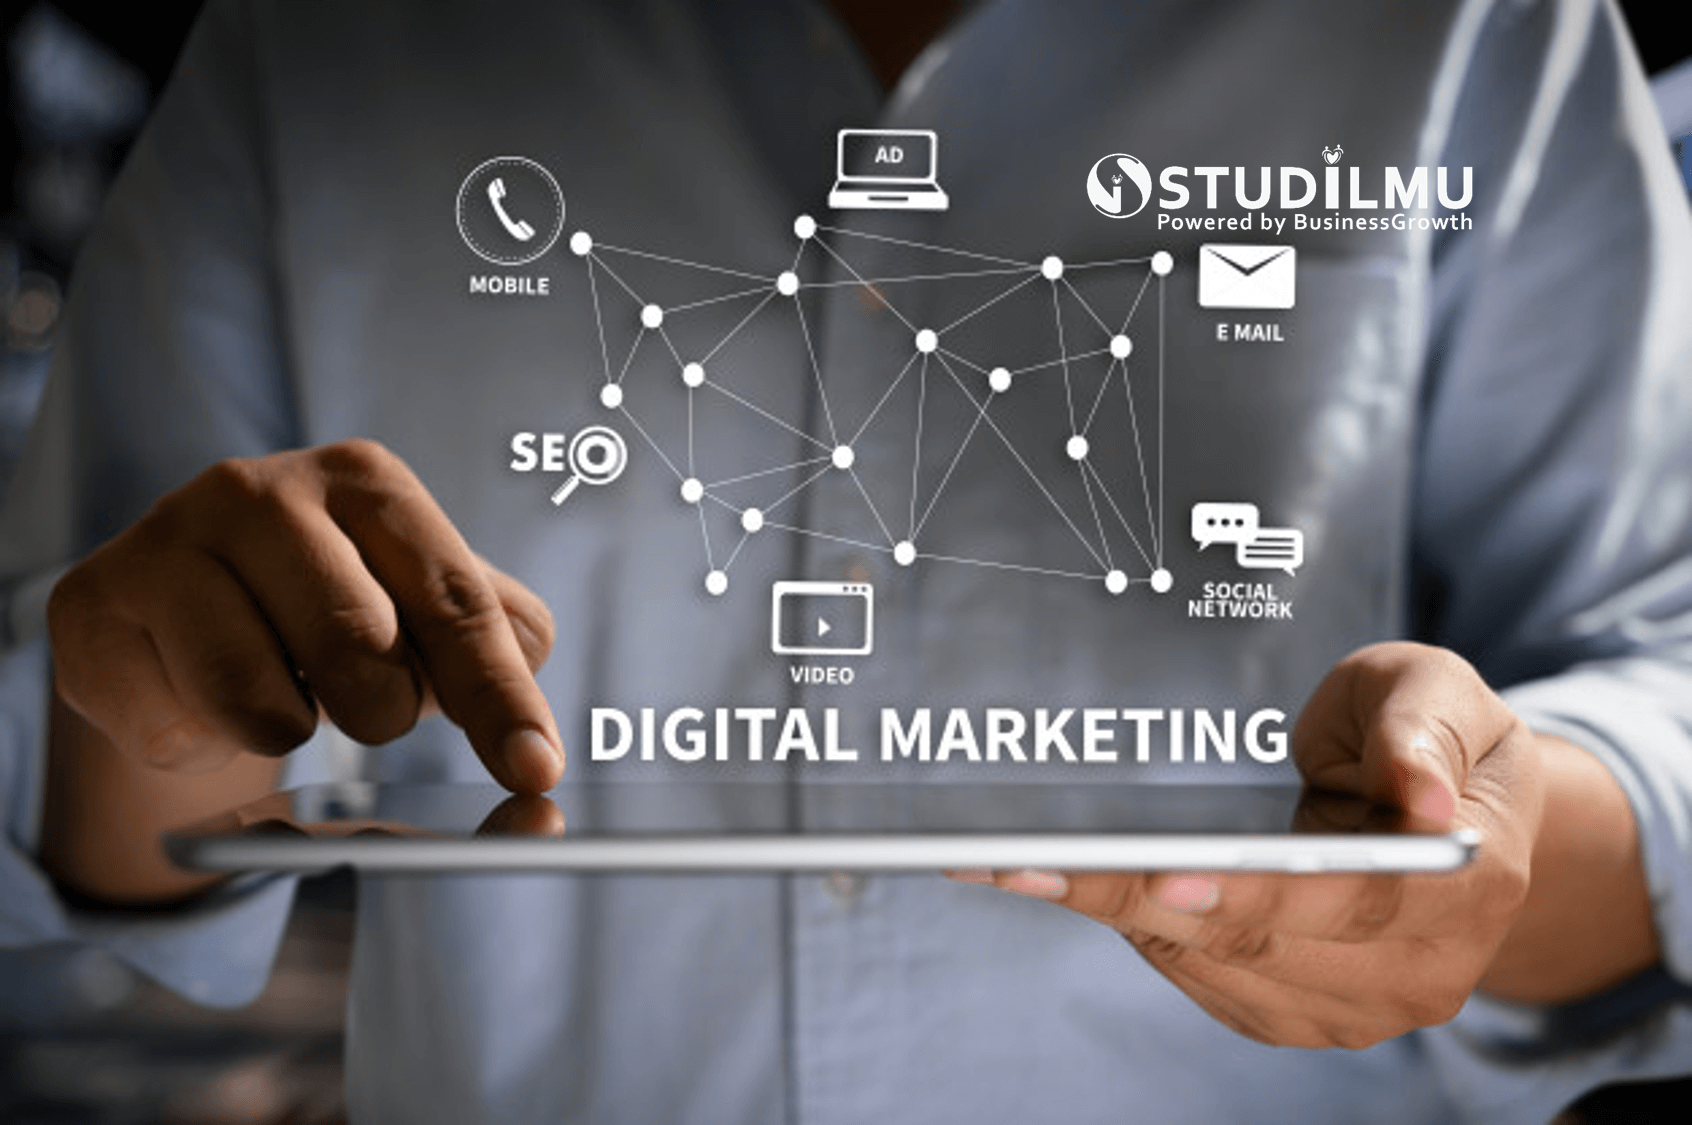 STUDILMU Career Advice - 10 Alasan Mengapa Digital Marketing Sangat Penting